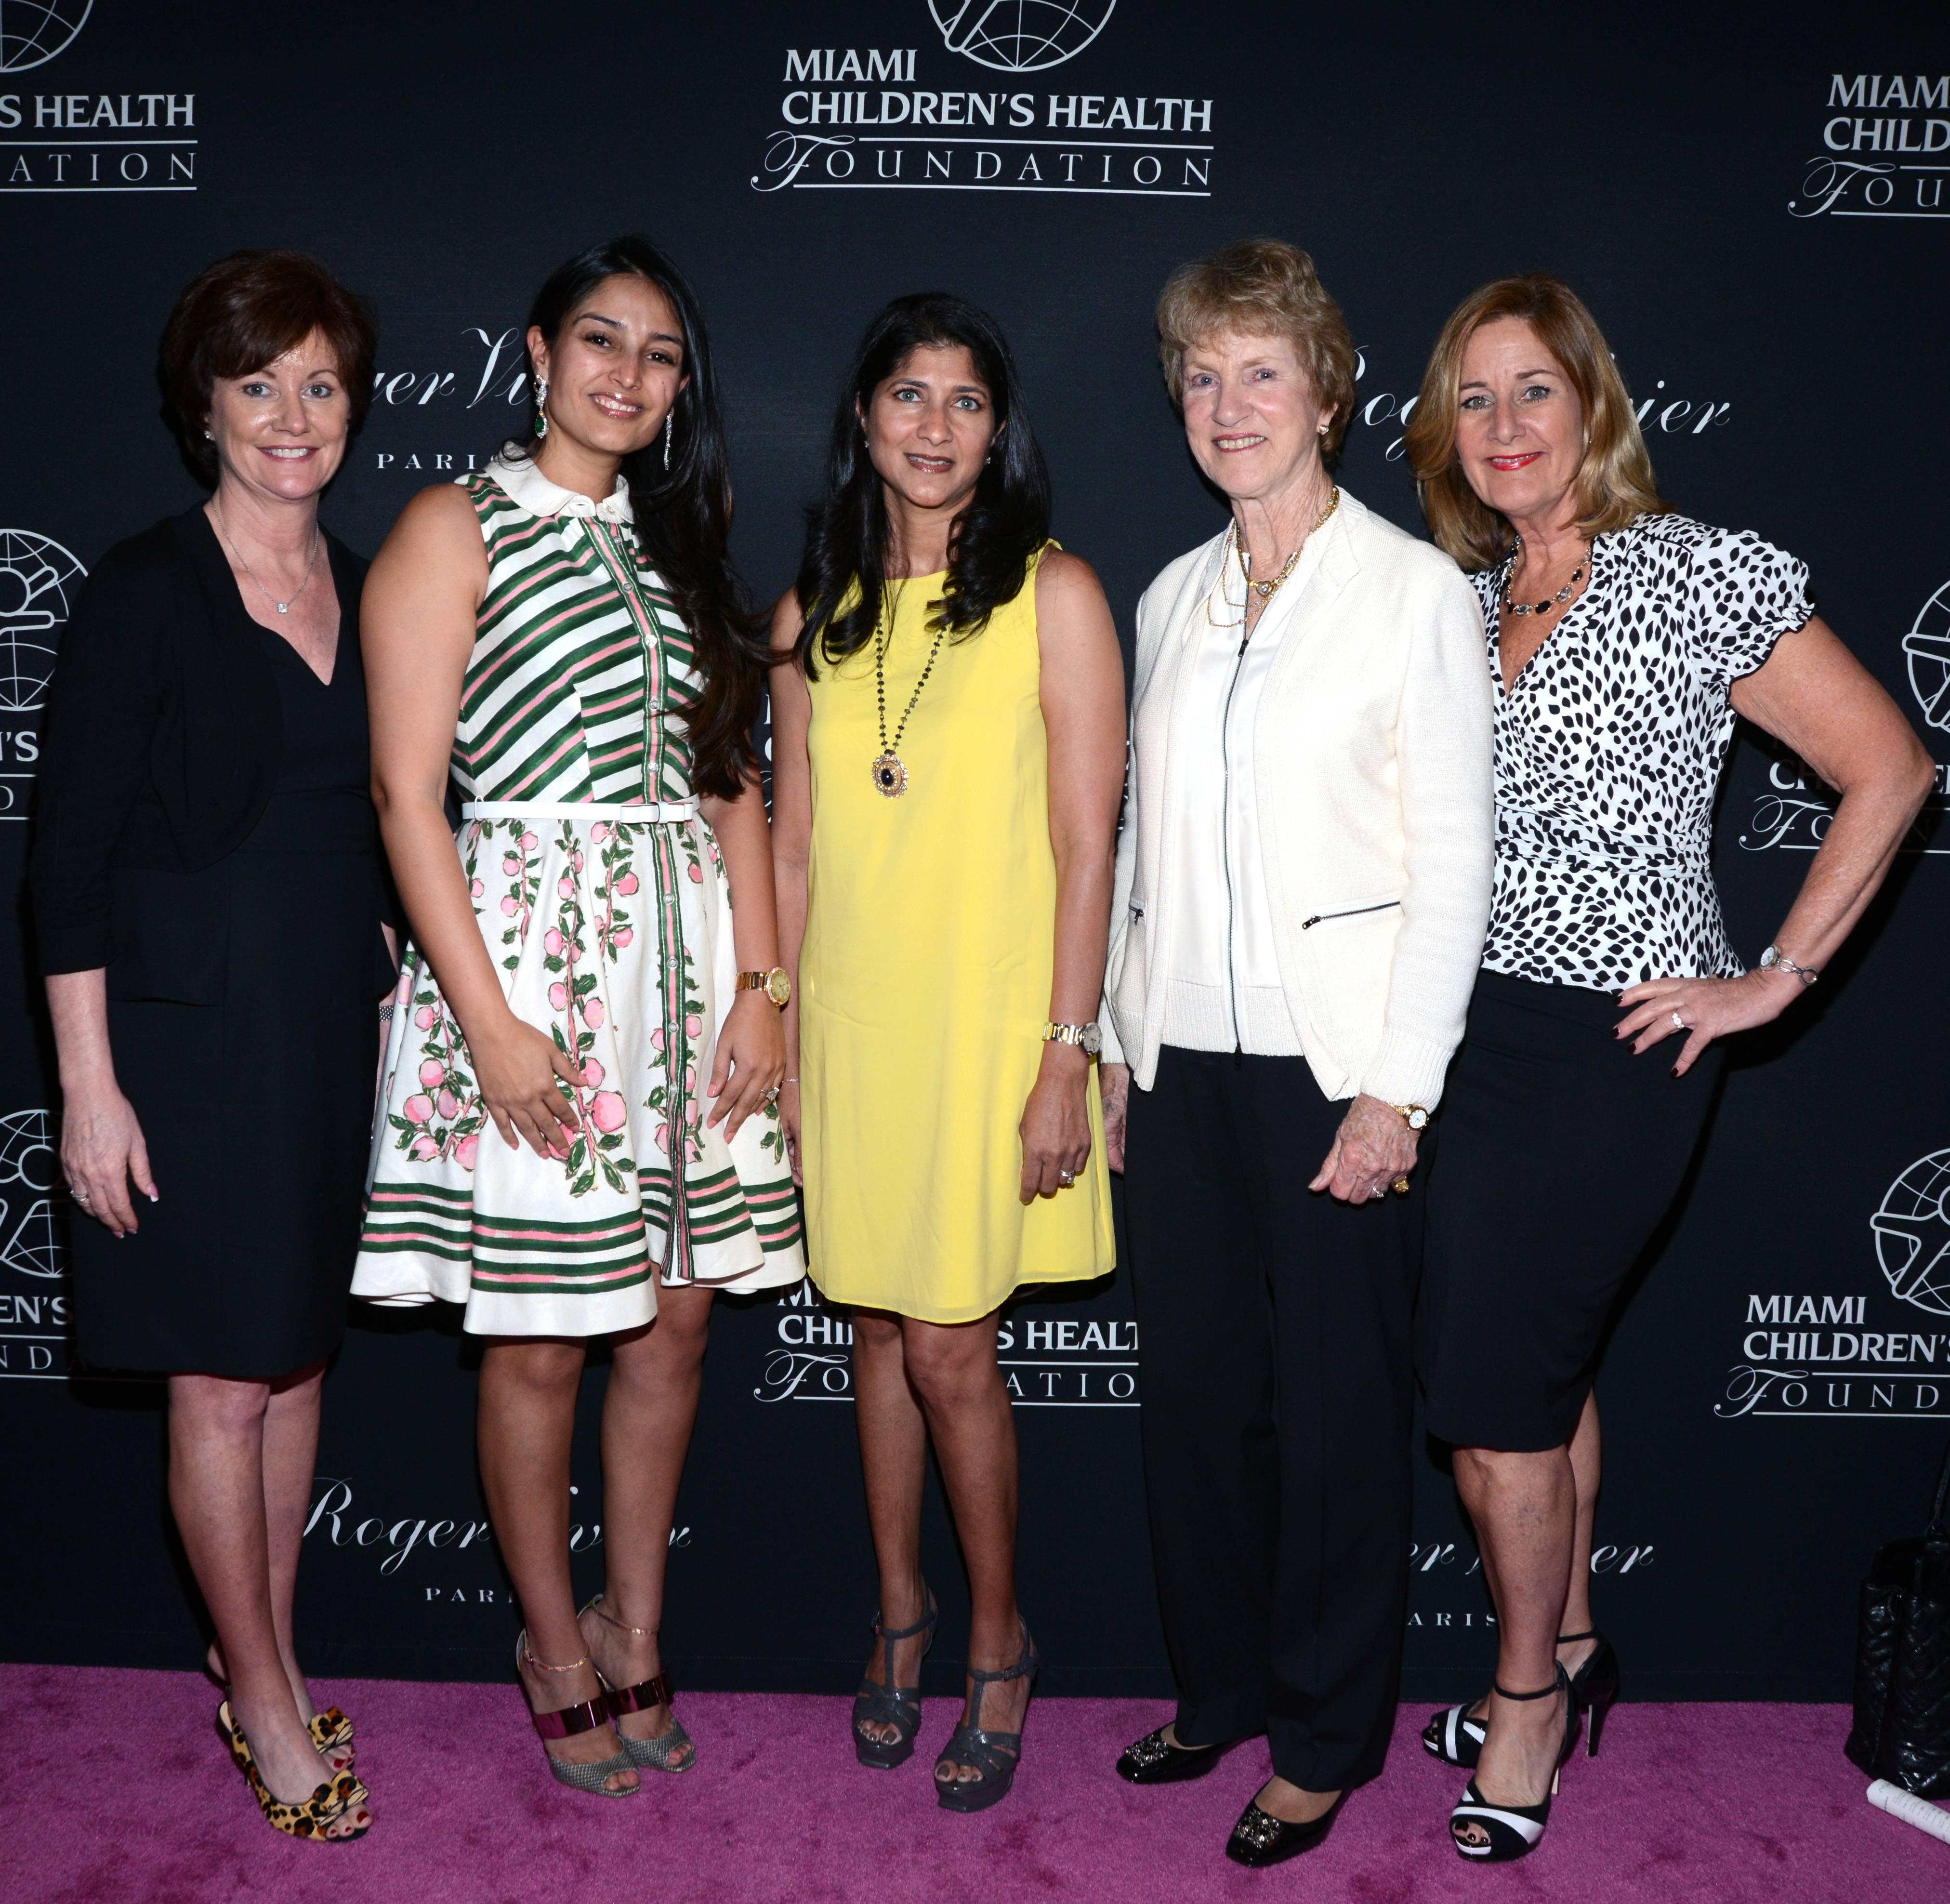 9. Patty McDonald, Ravneet Chowdhury, Dr. Rekha Kini,  Barbara Nicklaus and Nancy Humbert